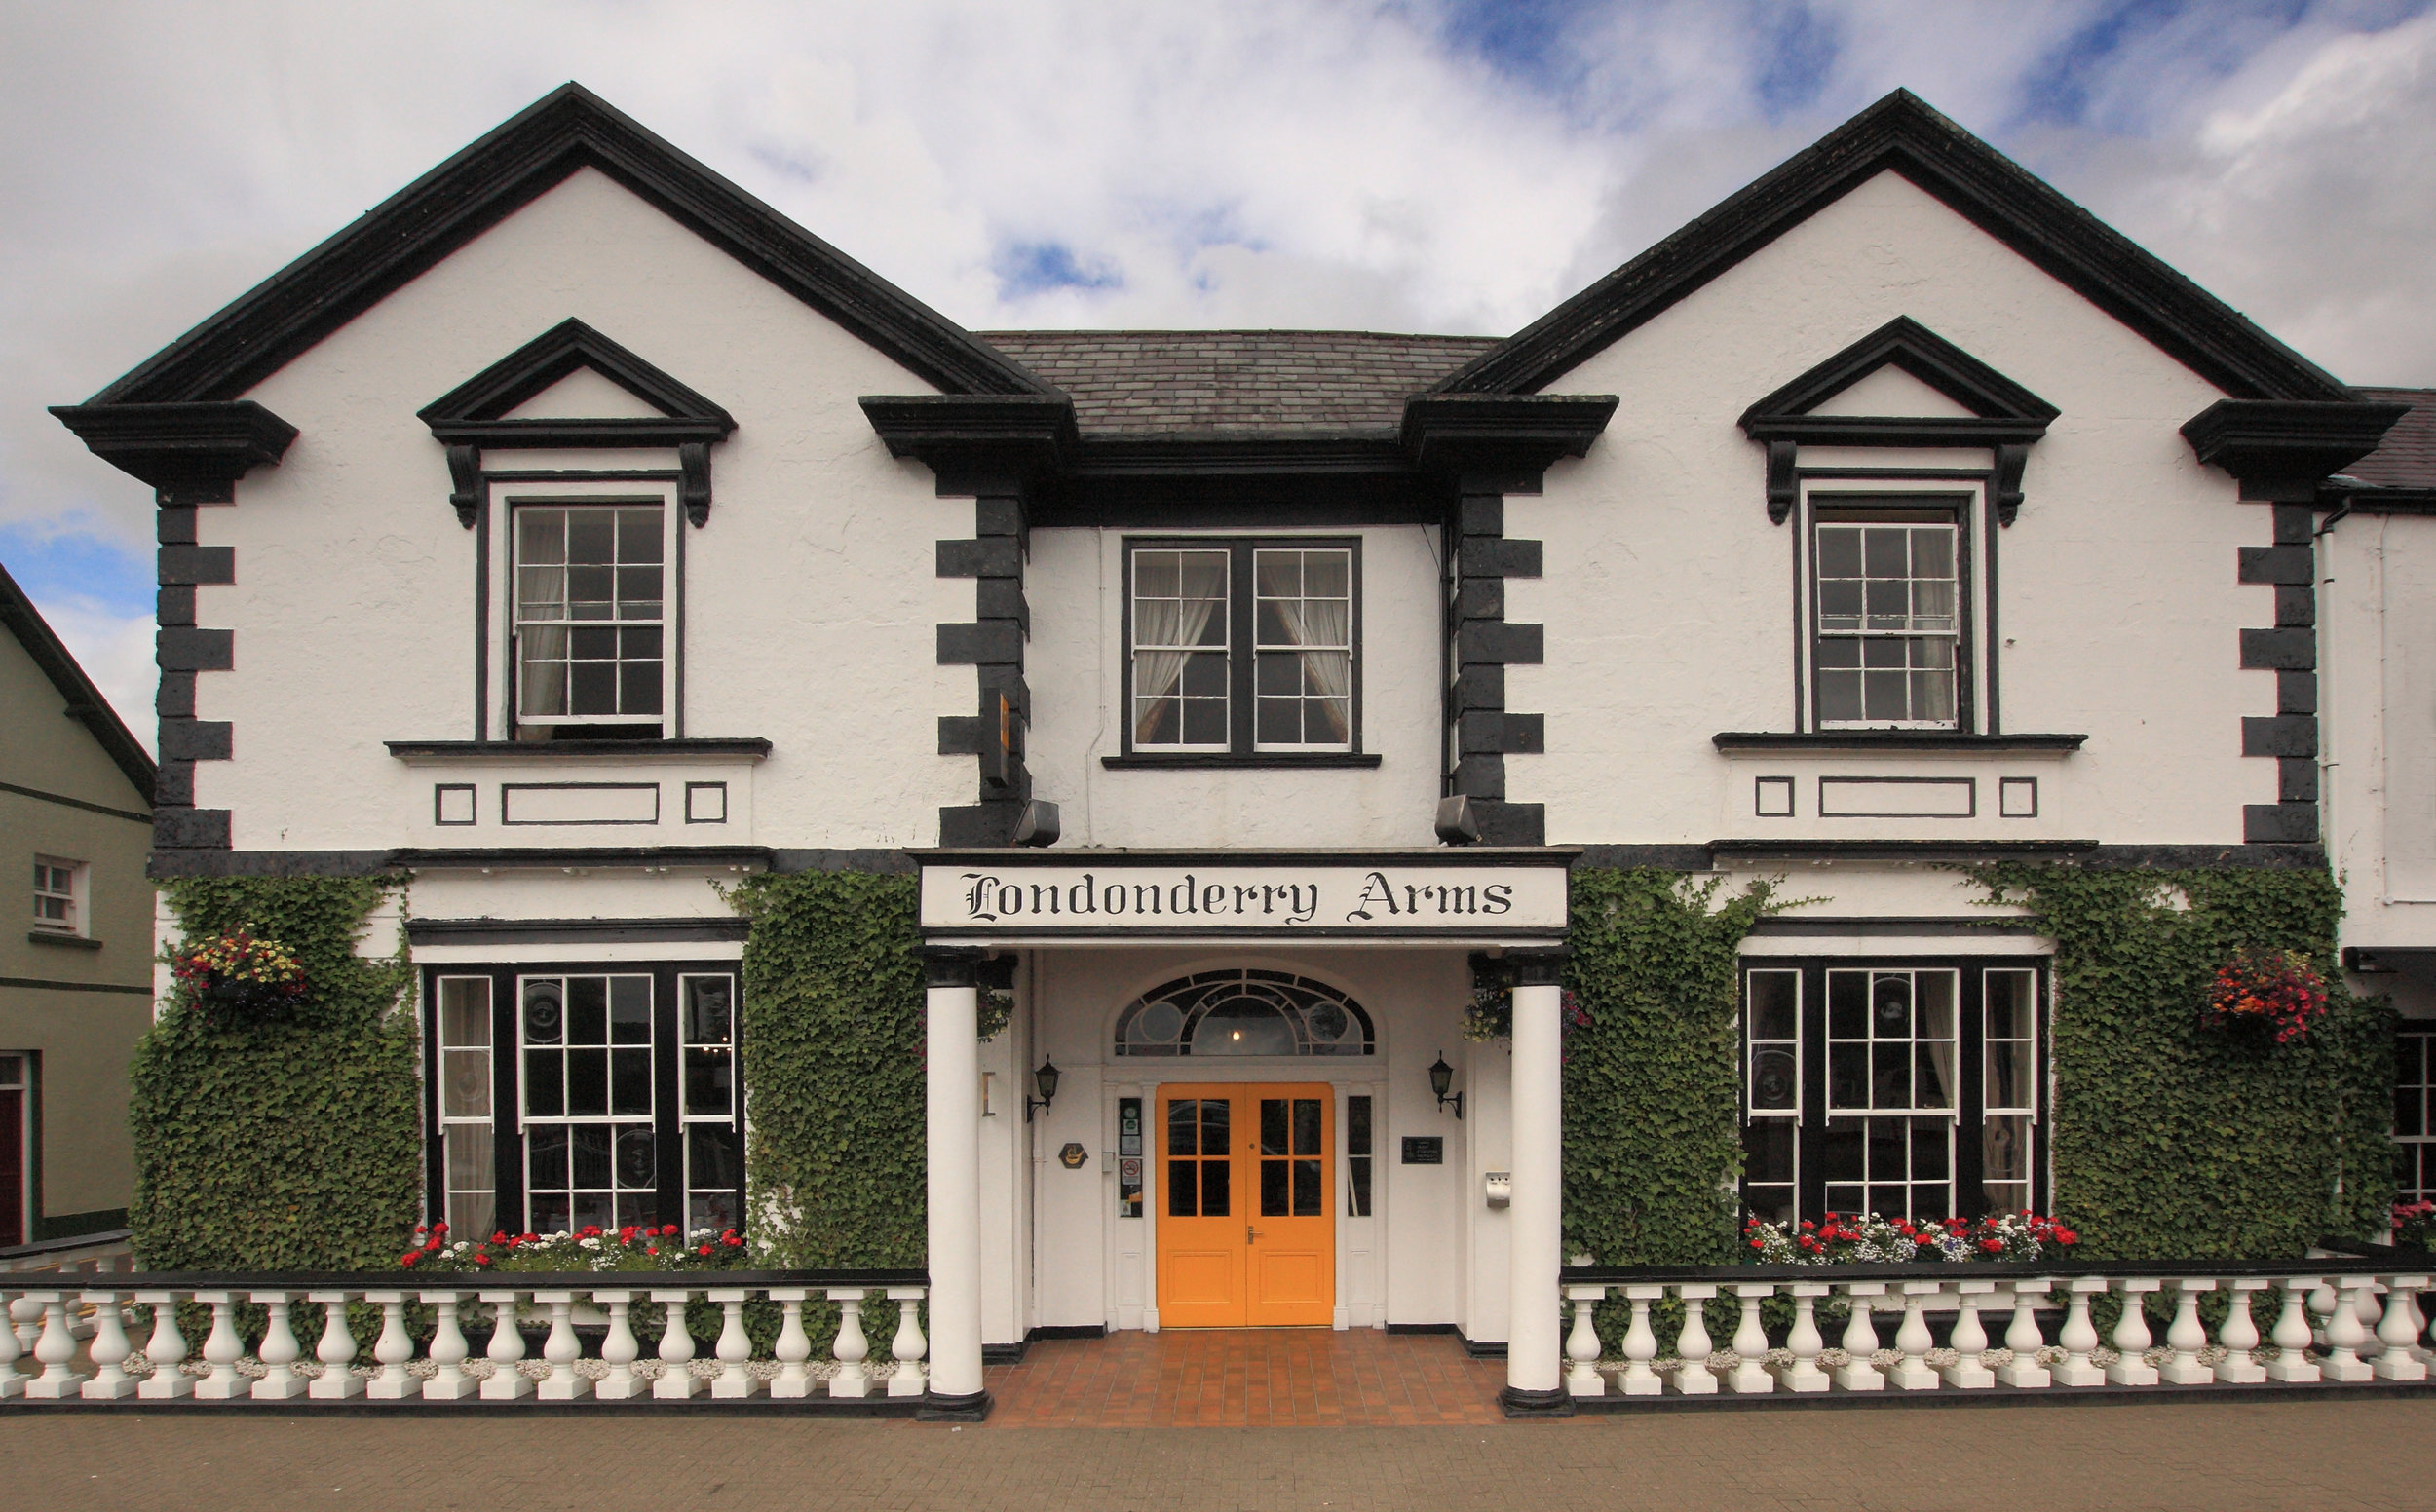 LONDONDERRY ARMS HOTEL - CARNLOUGH, COUNTY ANTRIM - Located in the picturesque Glens of Antrim in the coastal village of Carnlough, this former Coaching Inn, once owned by Winston Churchill, is filled with fascinating history and charm.